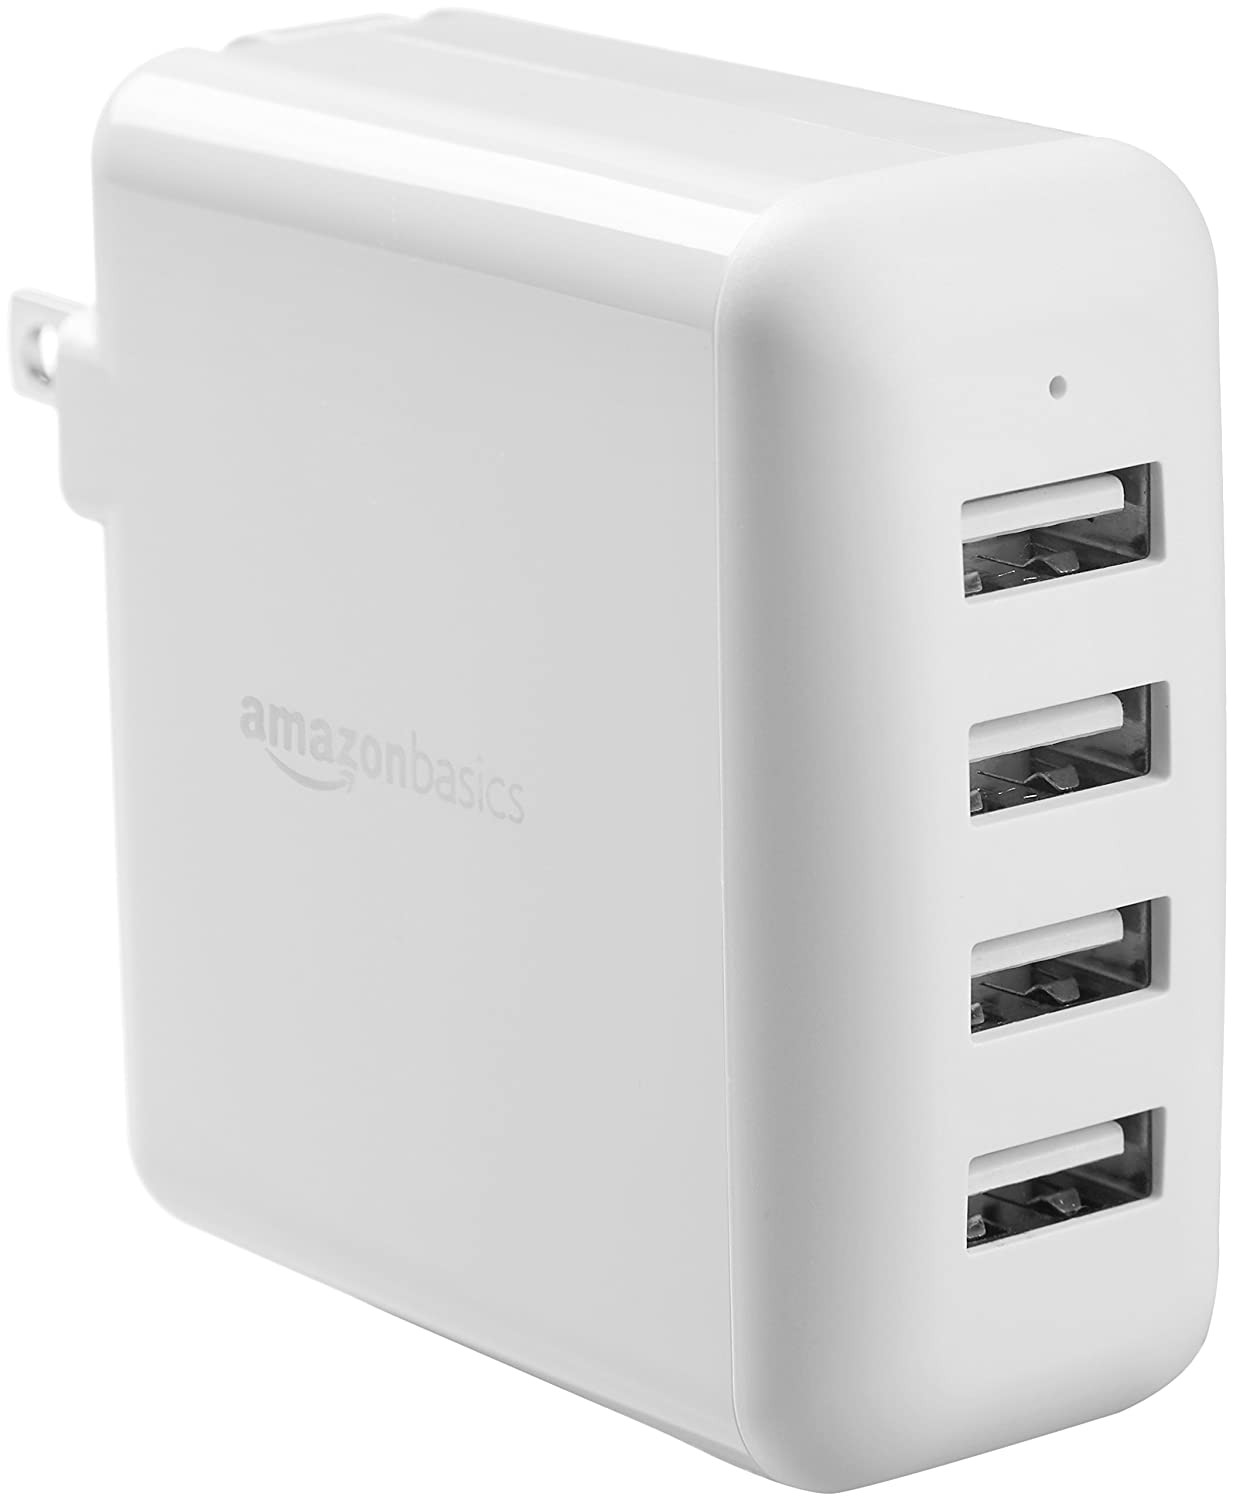 AmazonBasics 40W 4-Port USB Wall Charger - White